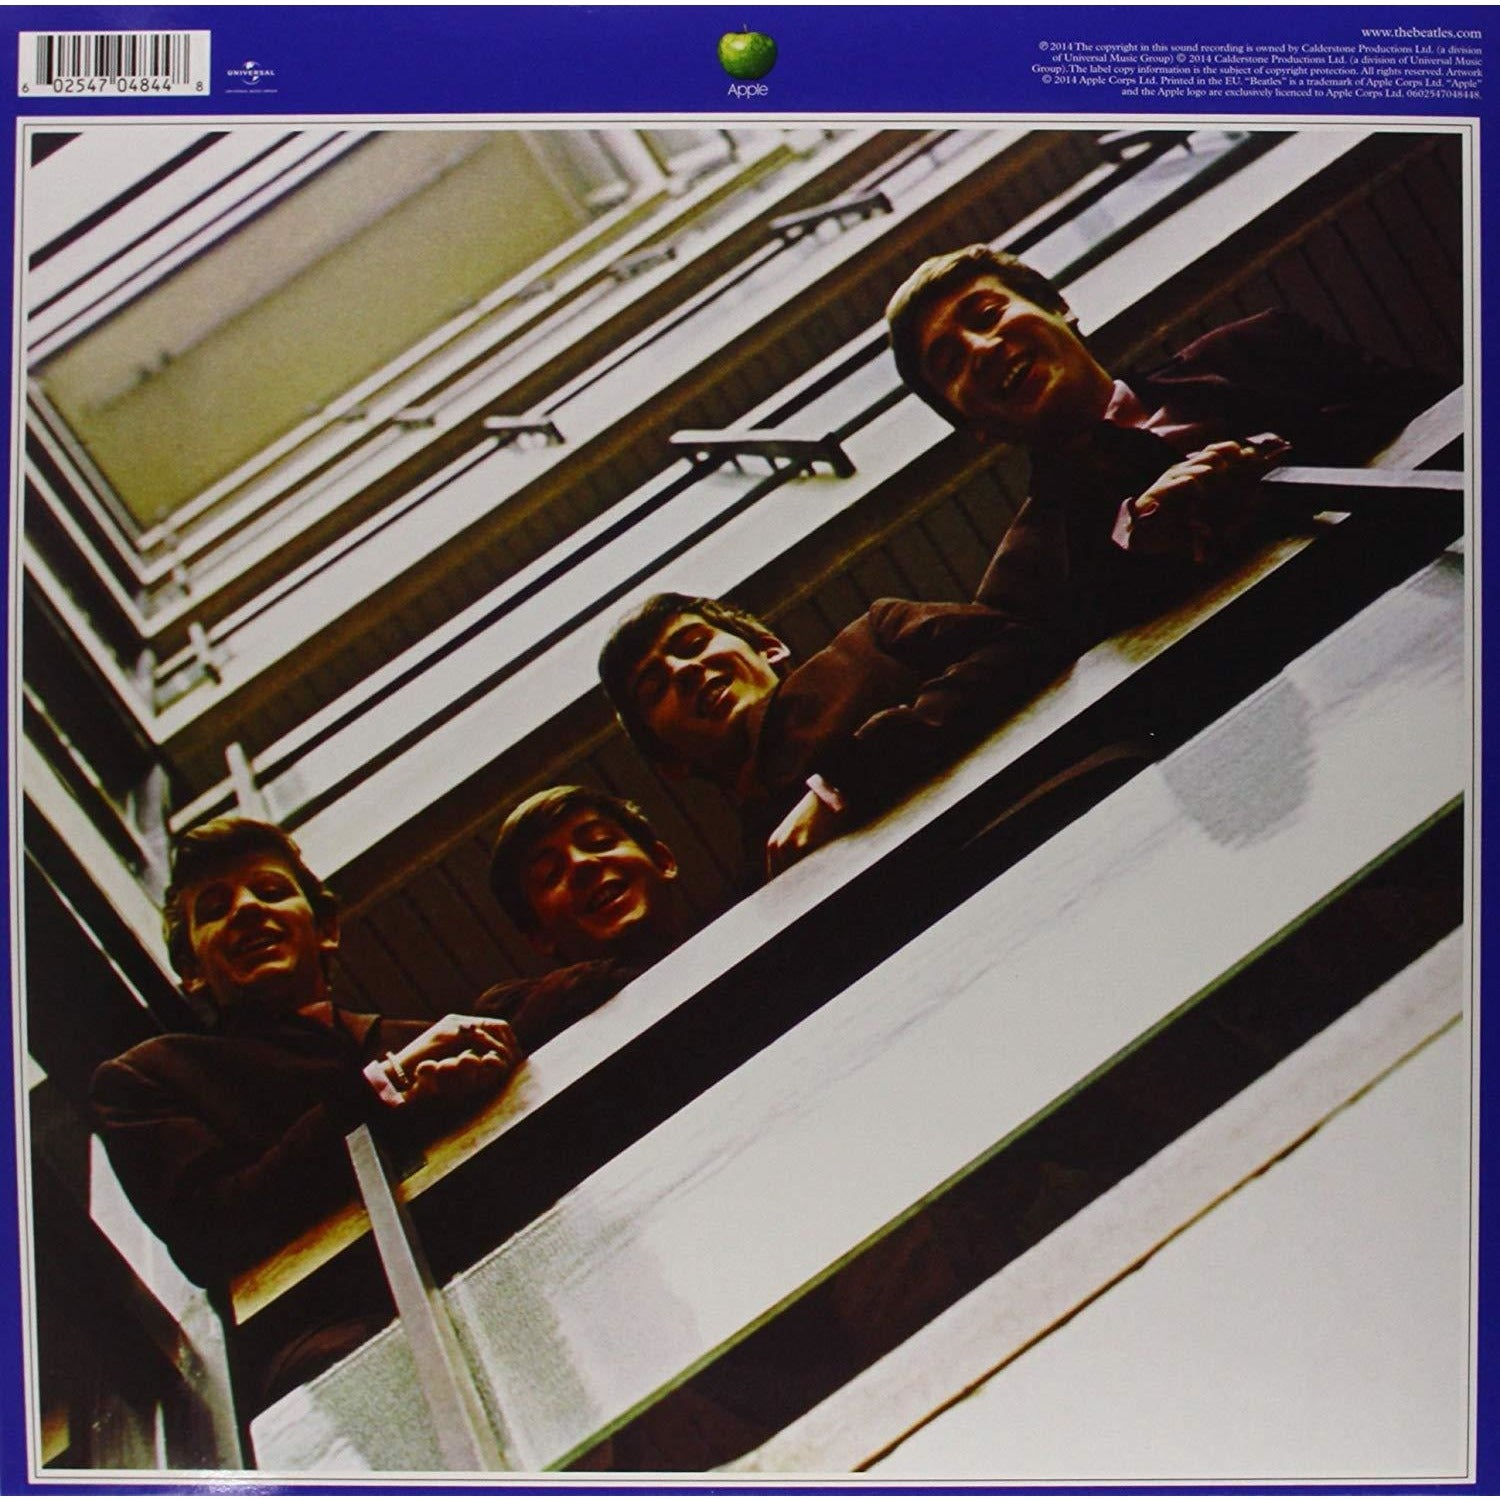 1967-1970 BLUE (2LP VINYL) - Vinyl Sound